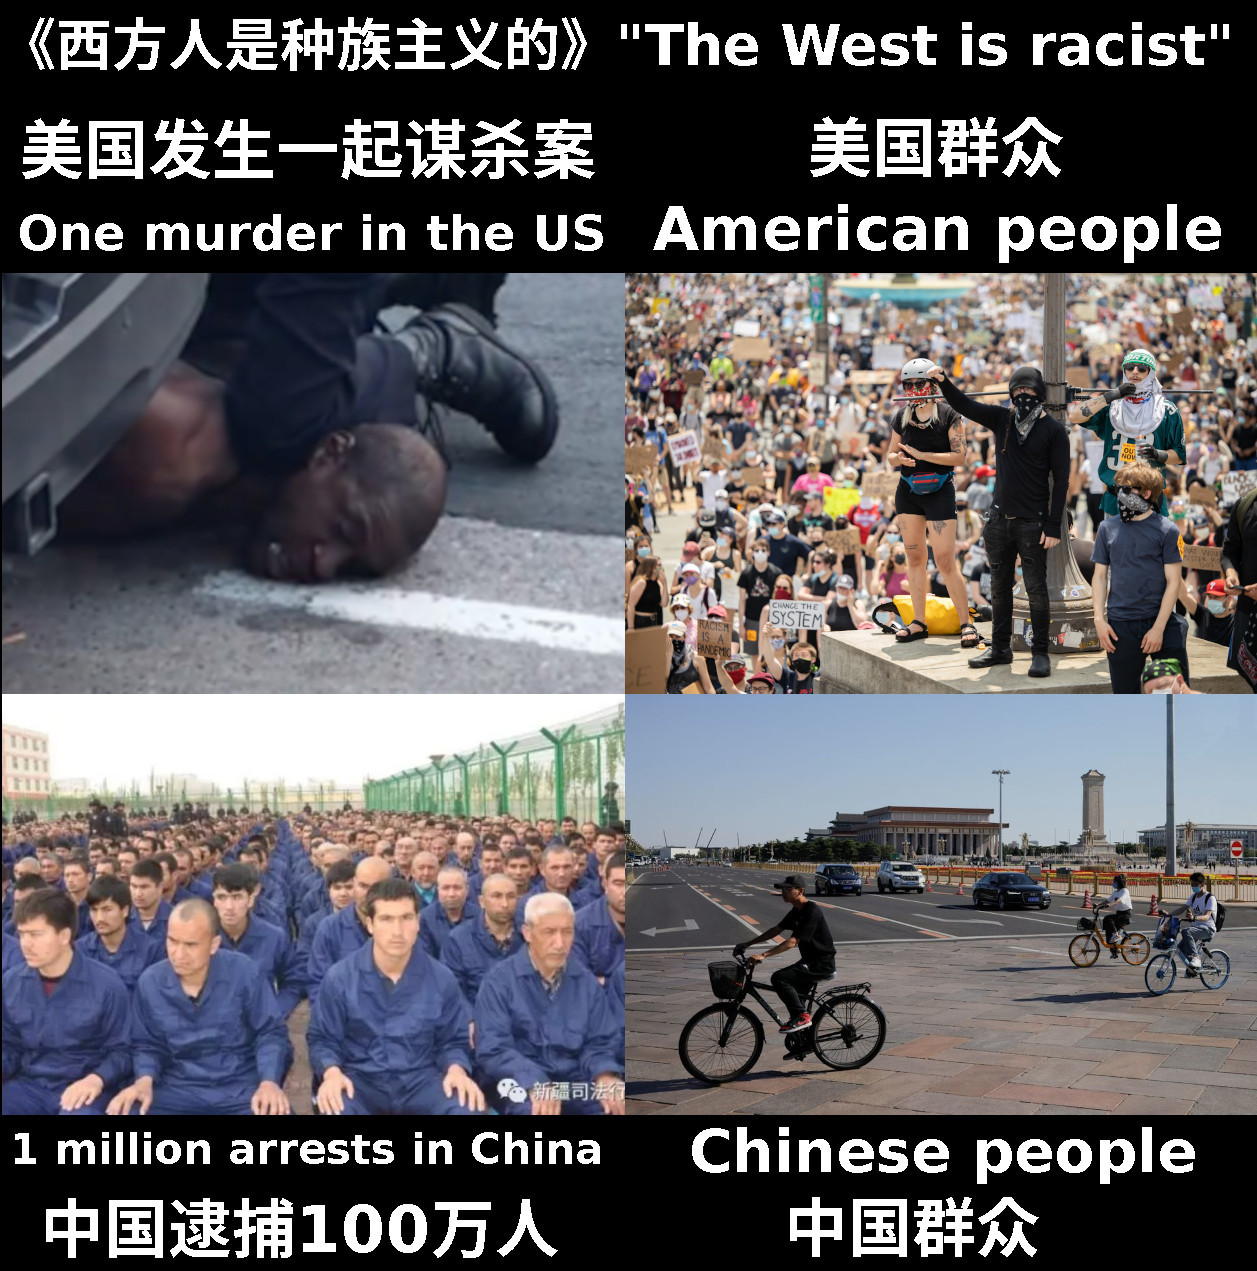 Racism in the West vs China George Floyd vs Xinjiang